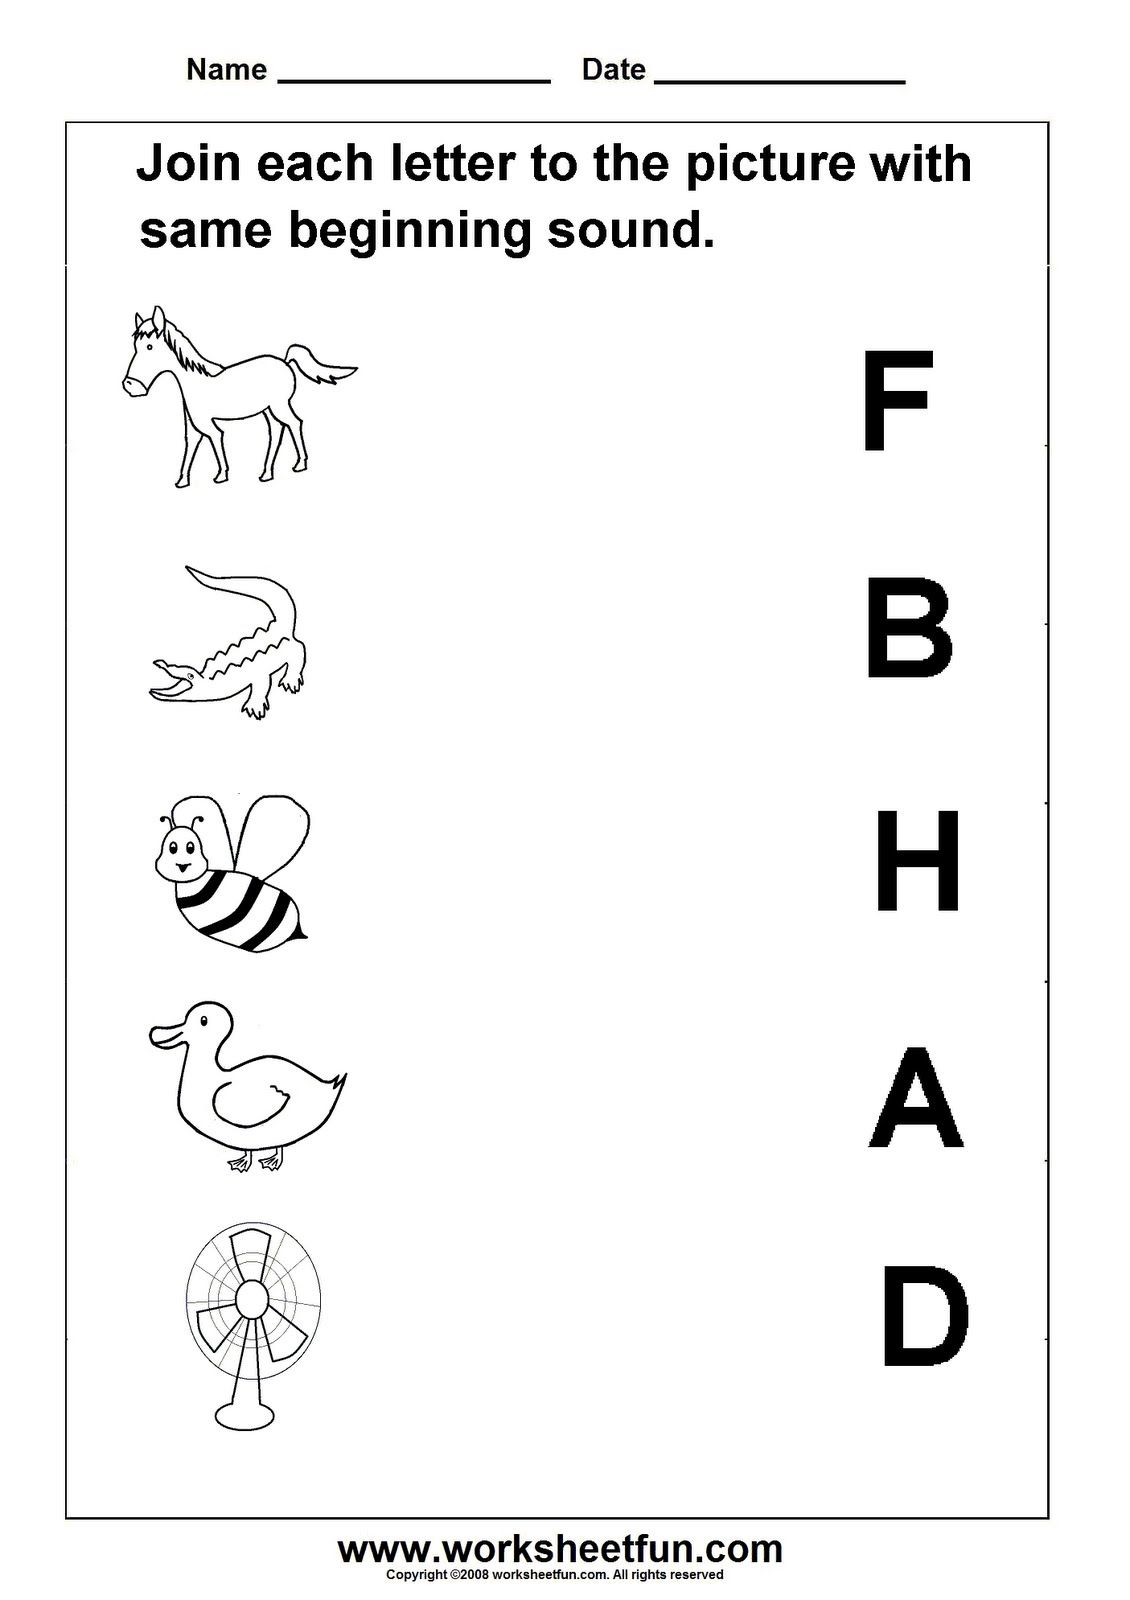 Worksheet Letter Sounds Worksheets For Kindergarten a letter sound worksheets for the classroom pinterest worksheets